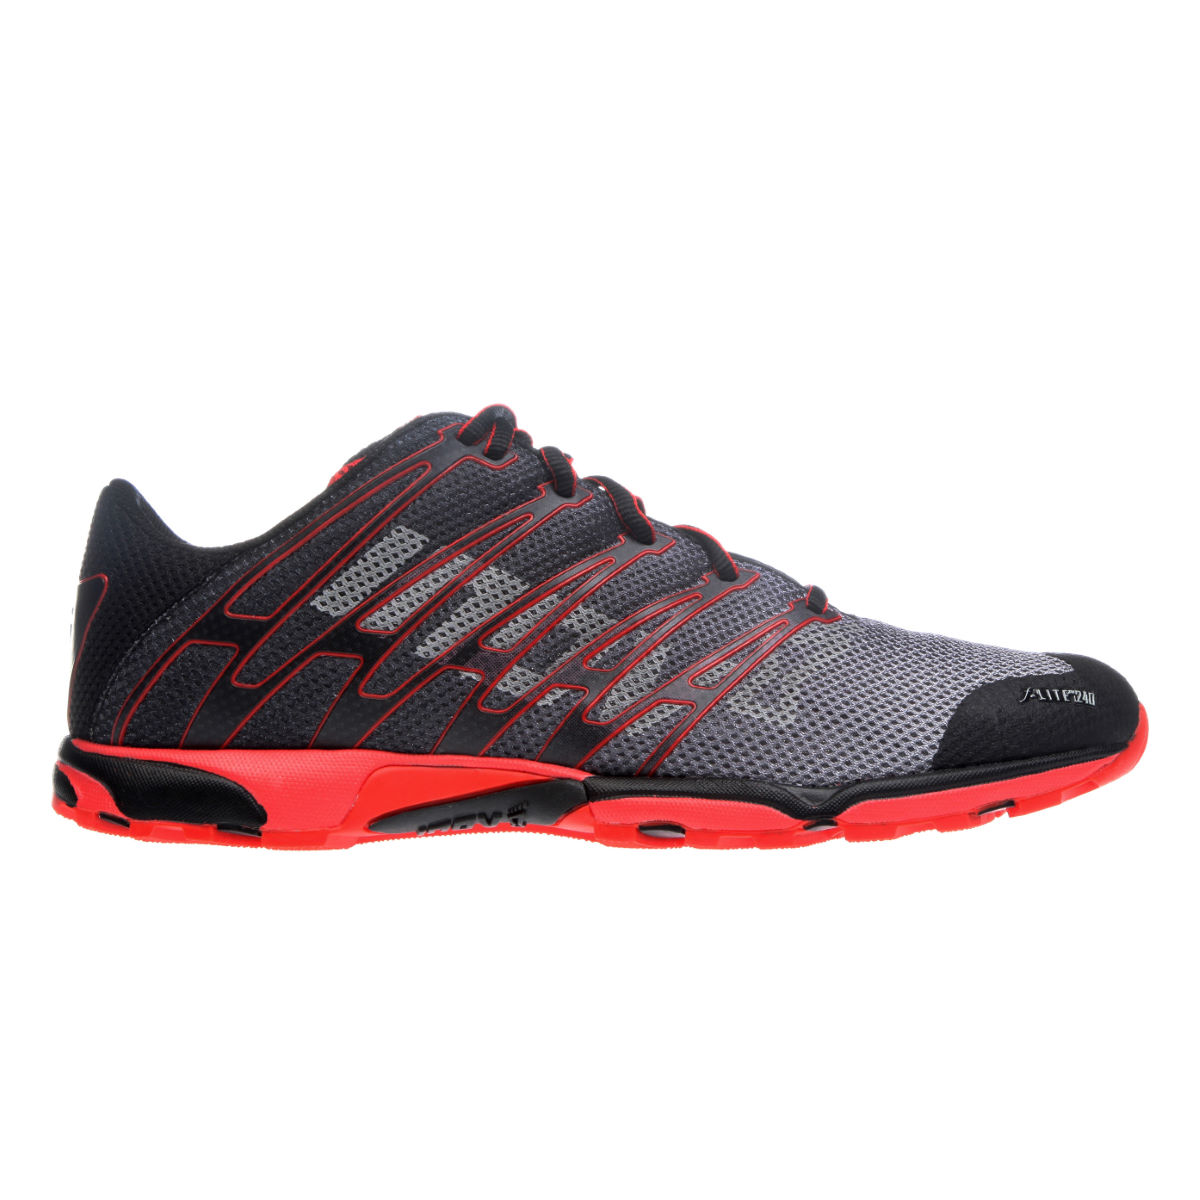 F Lite 240 Shoes Training Running Shoes